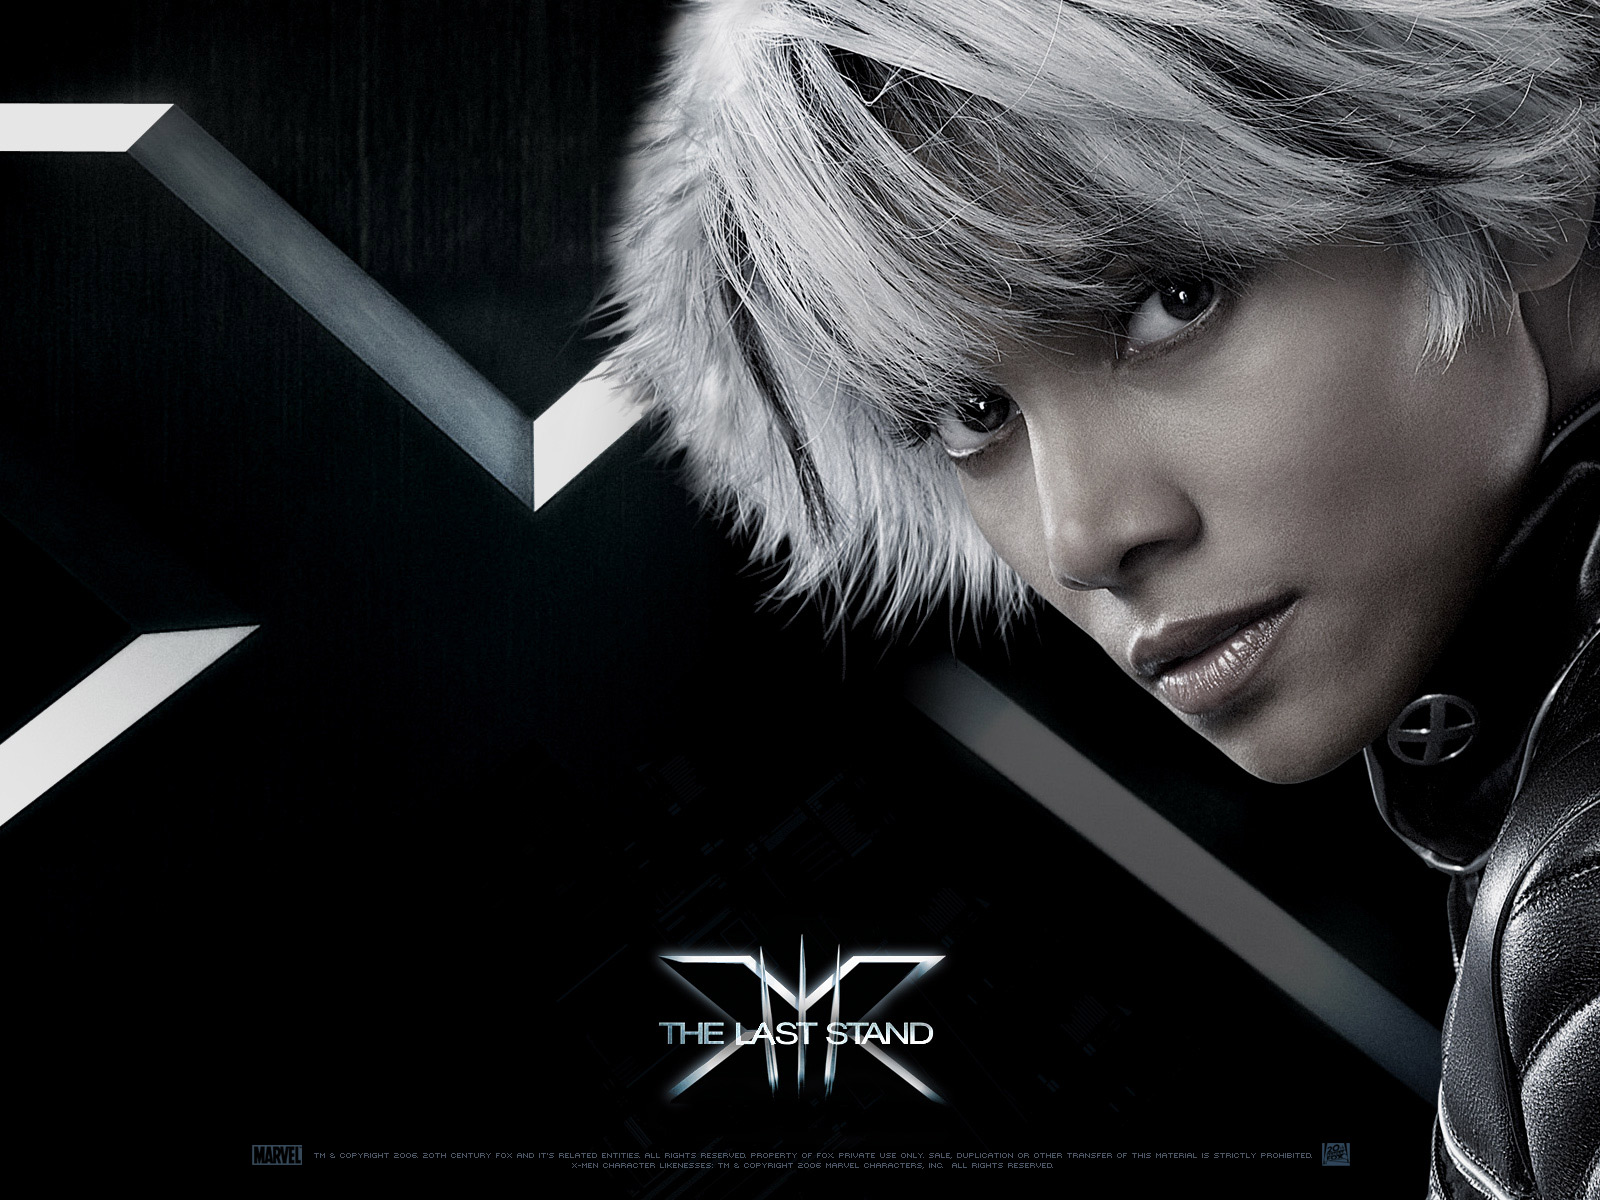 Wallpaper X-men Tornade Storm Halle Berry